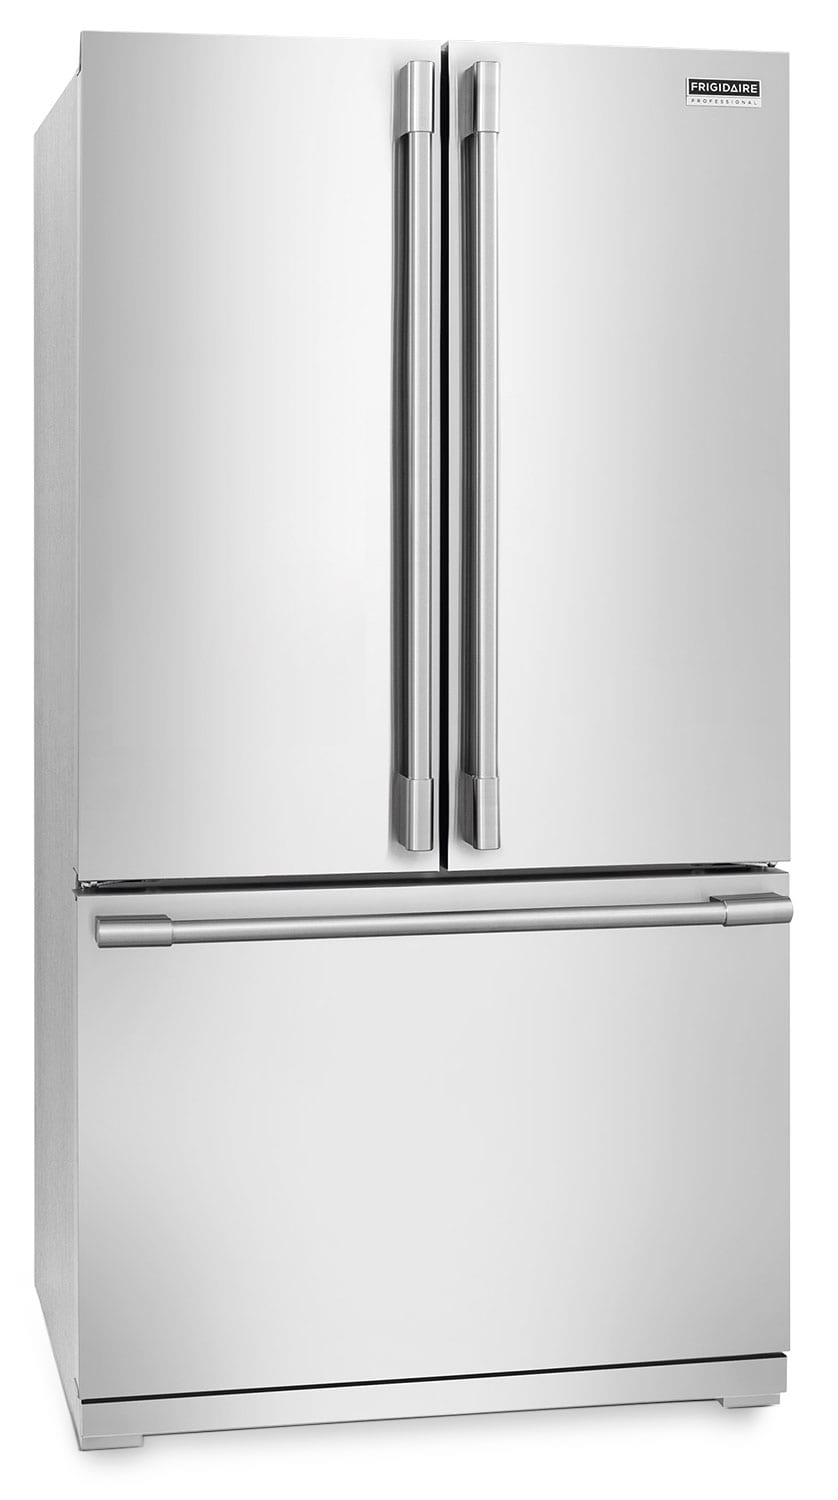 Frigidaire Professional Counter Depth French Door